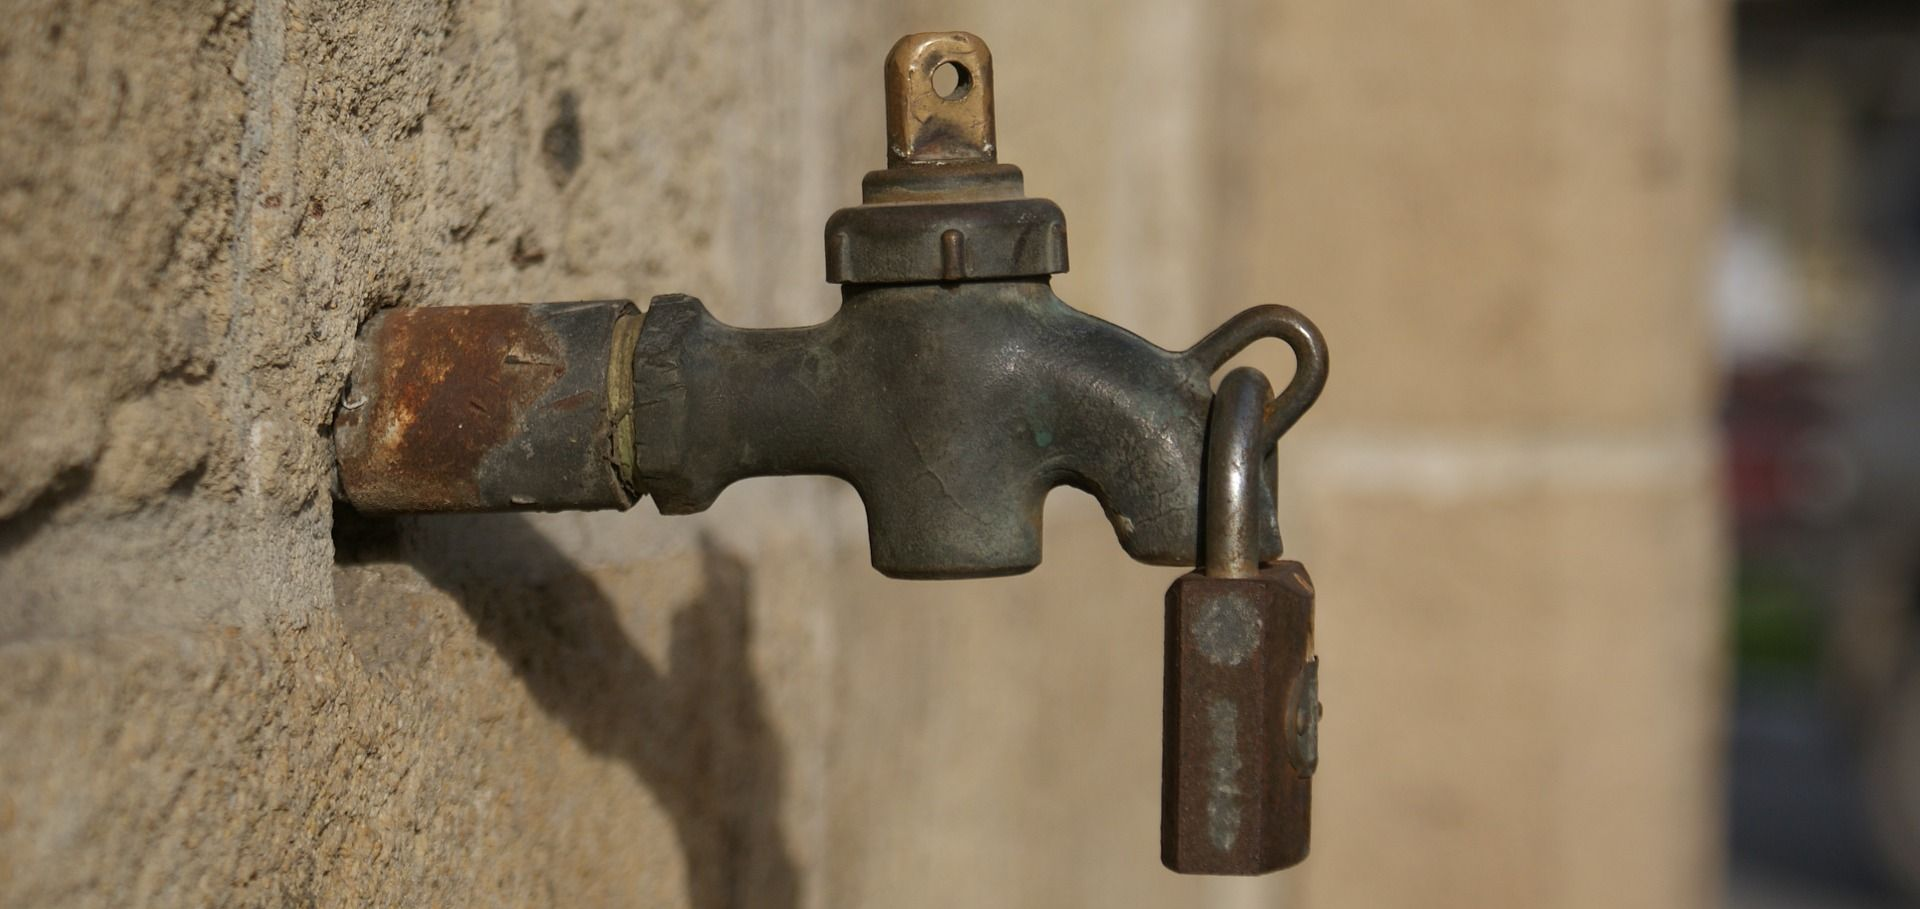 picture of a water tap with a rusty lock on it